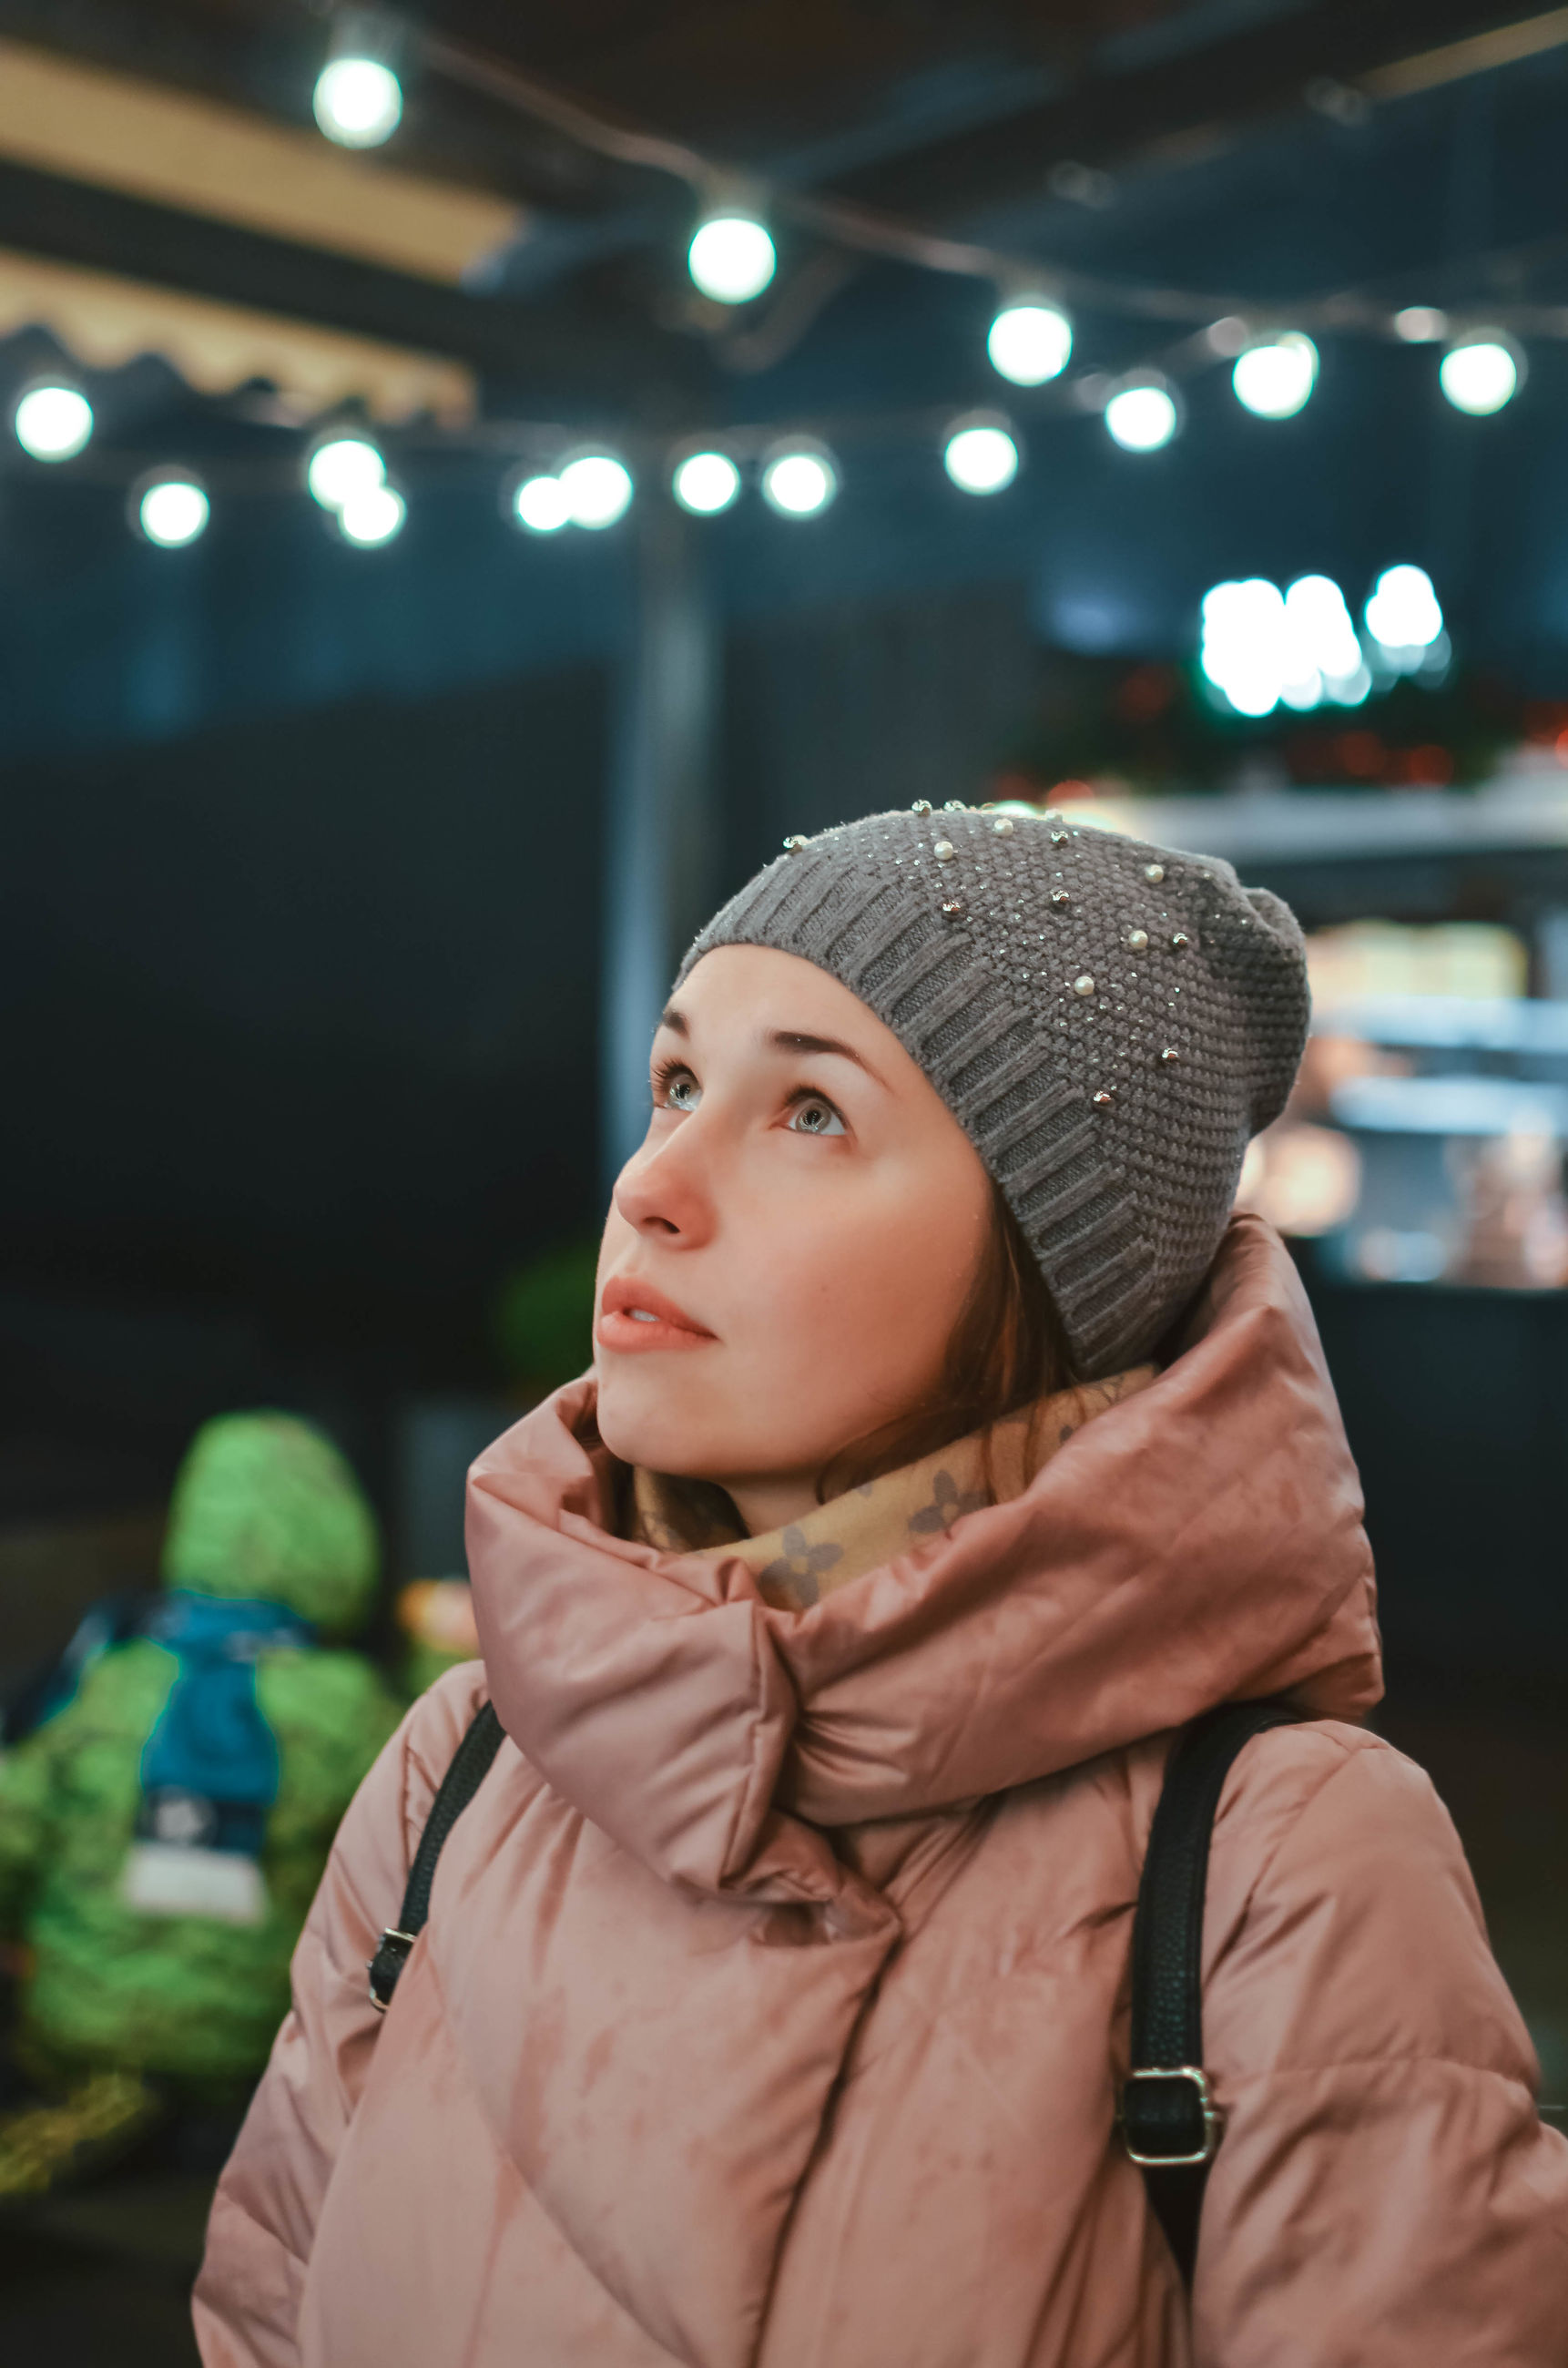 one person, real people, clothing, focus on foreground, looking away, lifestyles, looking, leisure activity, portrait, indoors, winter, illuminated, young adult, warm clothing, hat, women, standing, headshot, front view, contemplation, beautiful woman, scarf, hairstyle